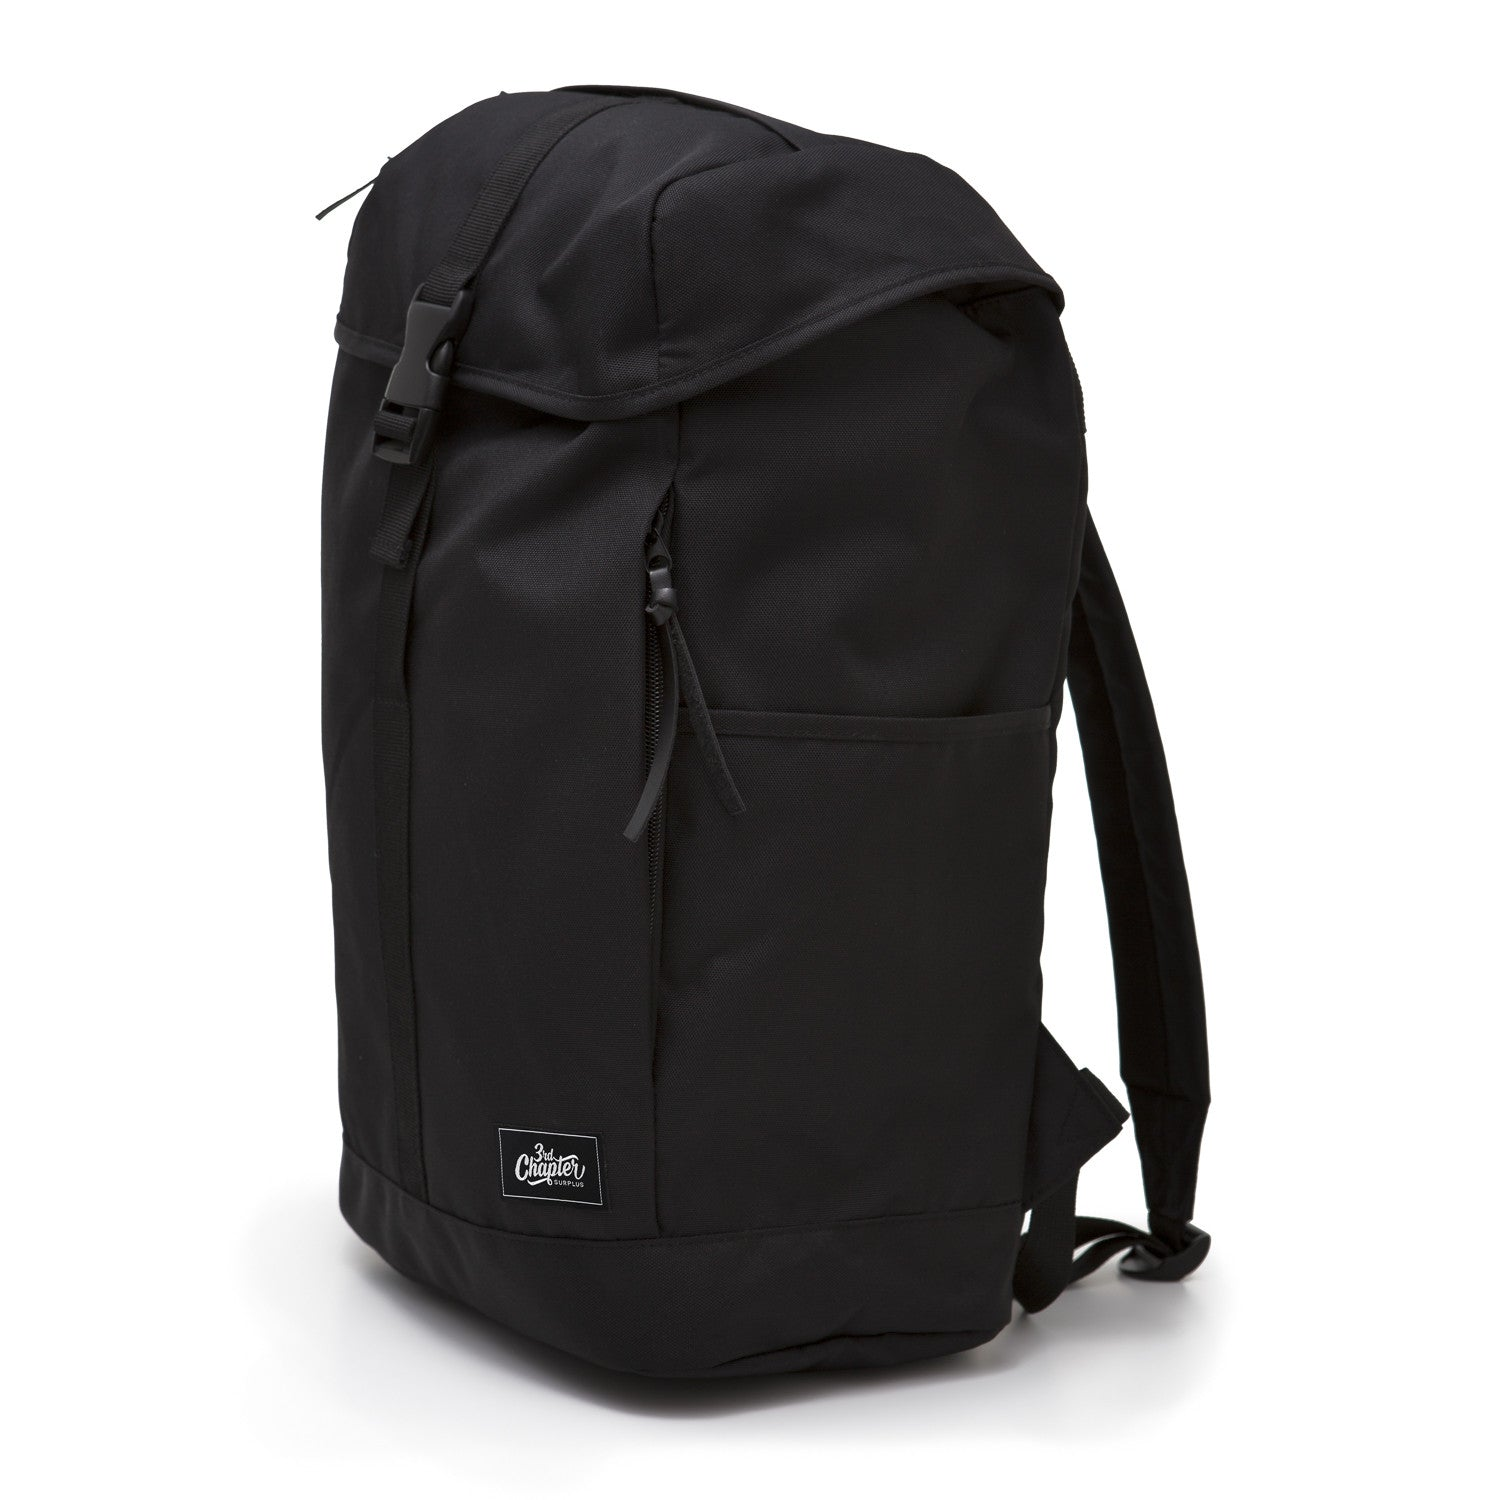 Key Backpack - 3rdchapter - 2